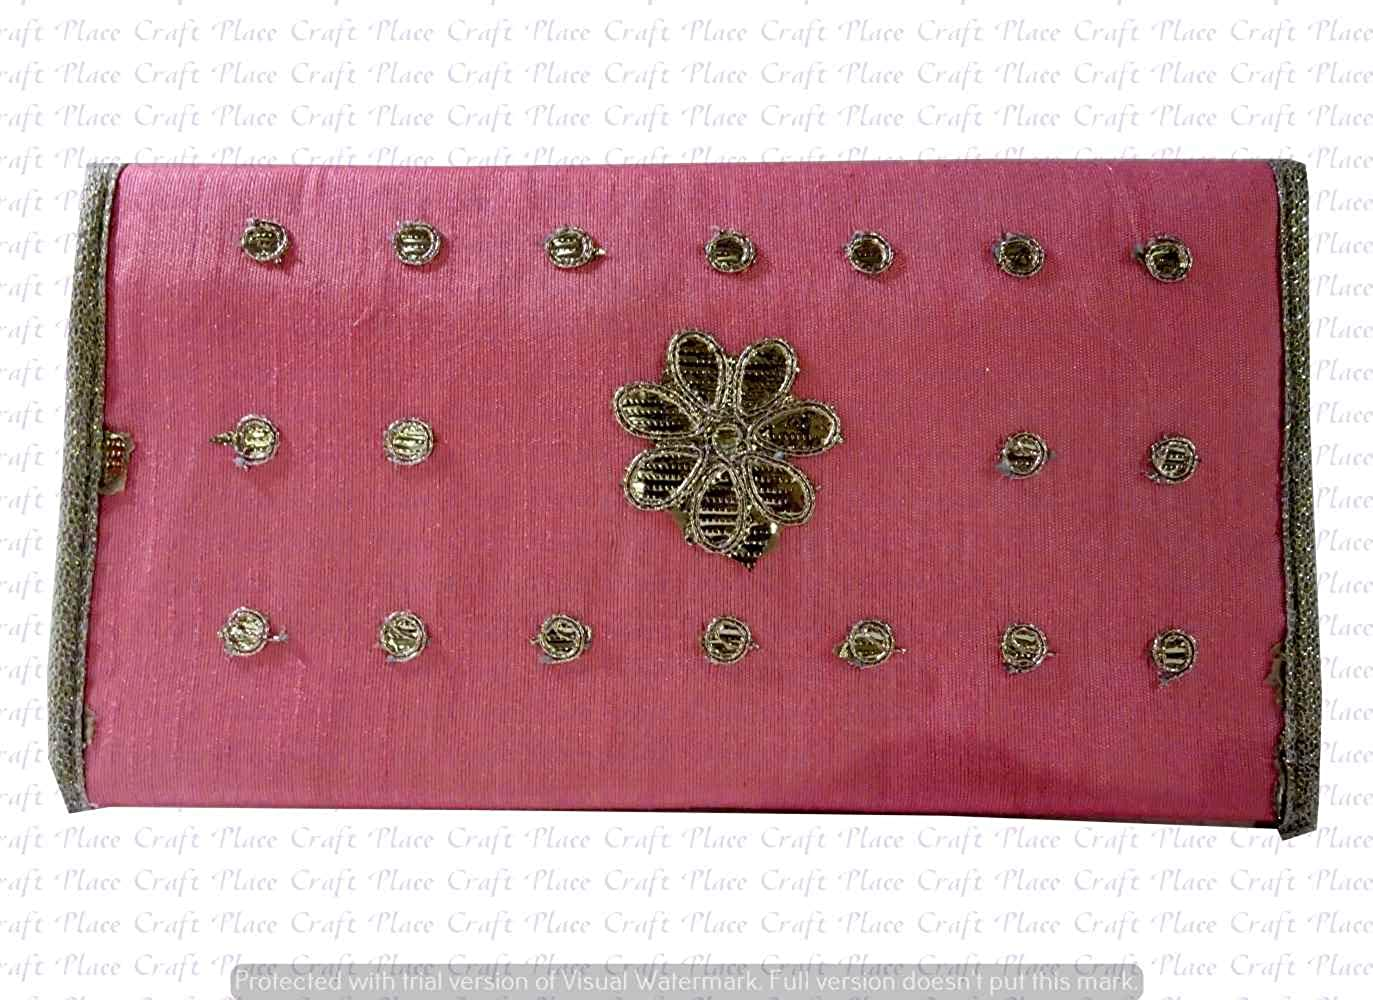 Indian Wholesale 20 pc lot Bulk Mandala Hand Bag Ethnic Clutches Purse Shoulder For Ladies by Craft Place AAB-52